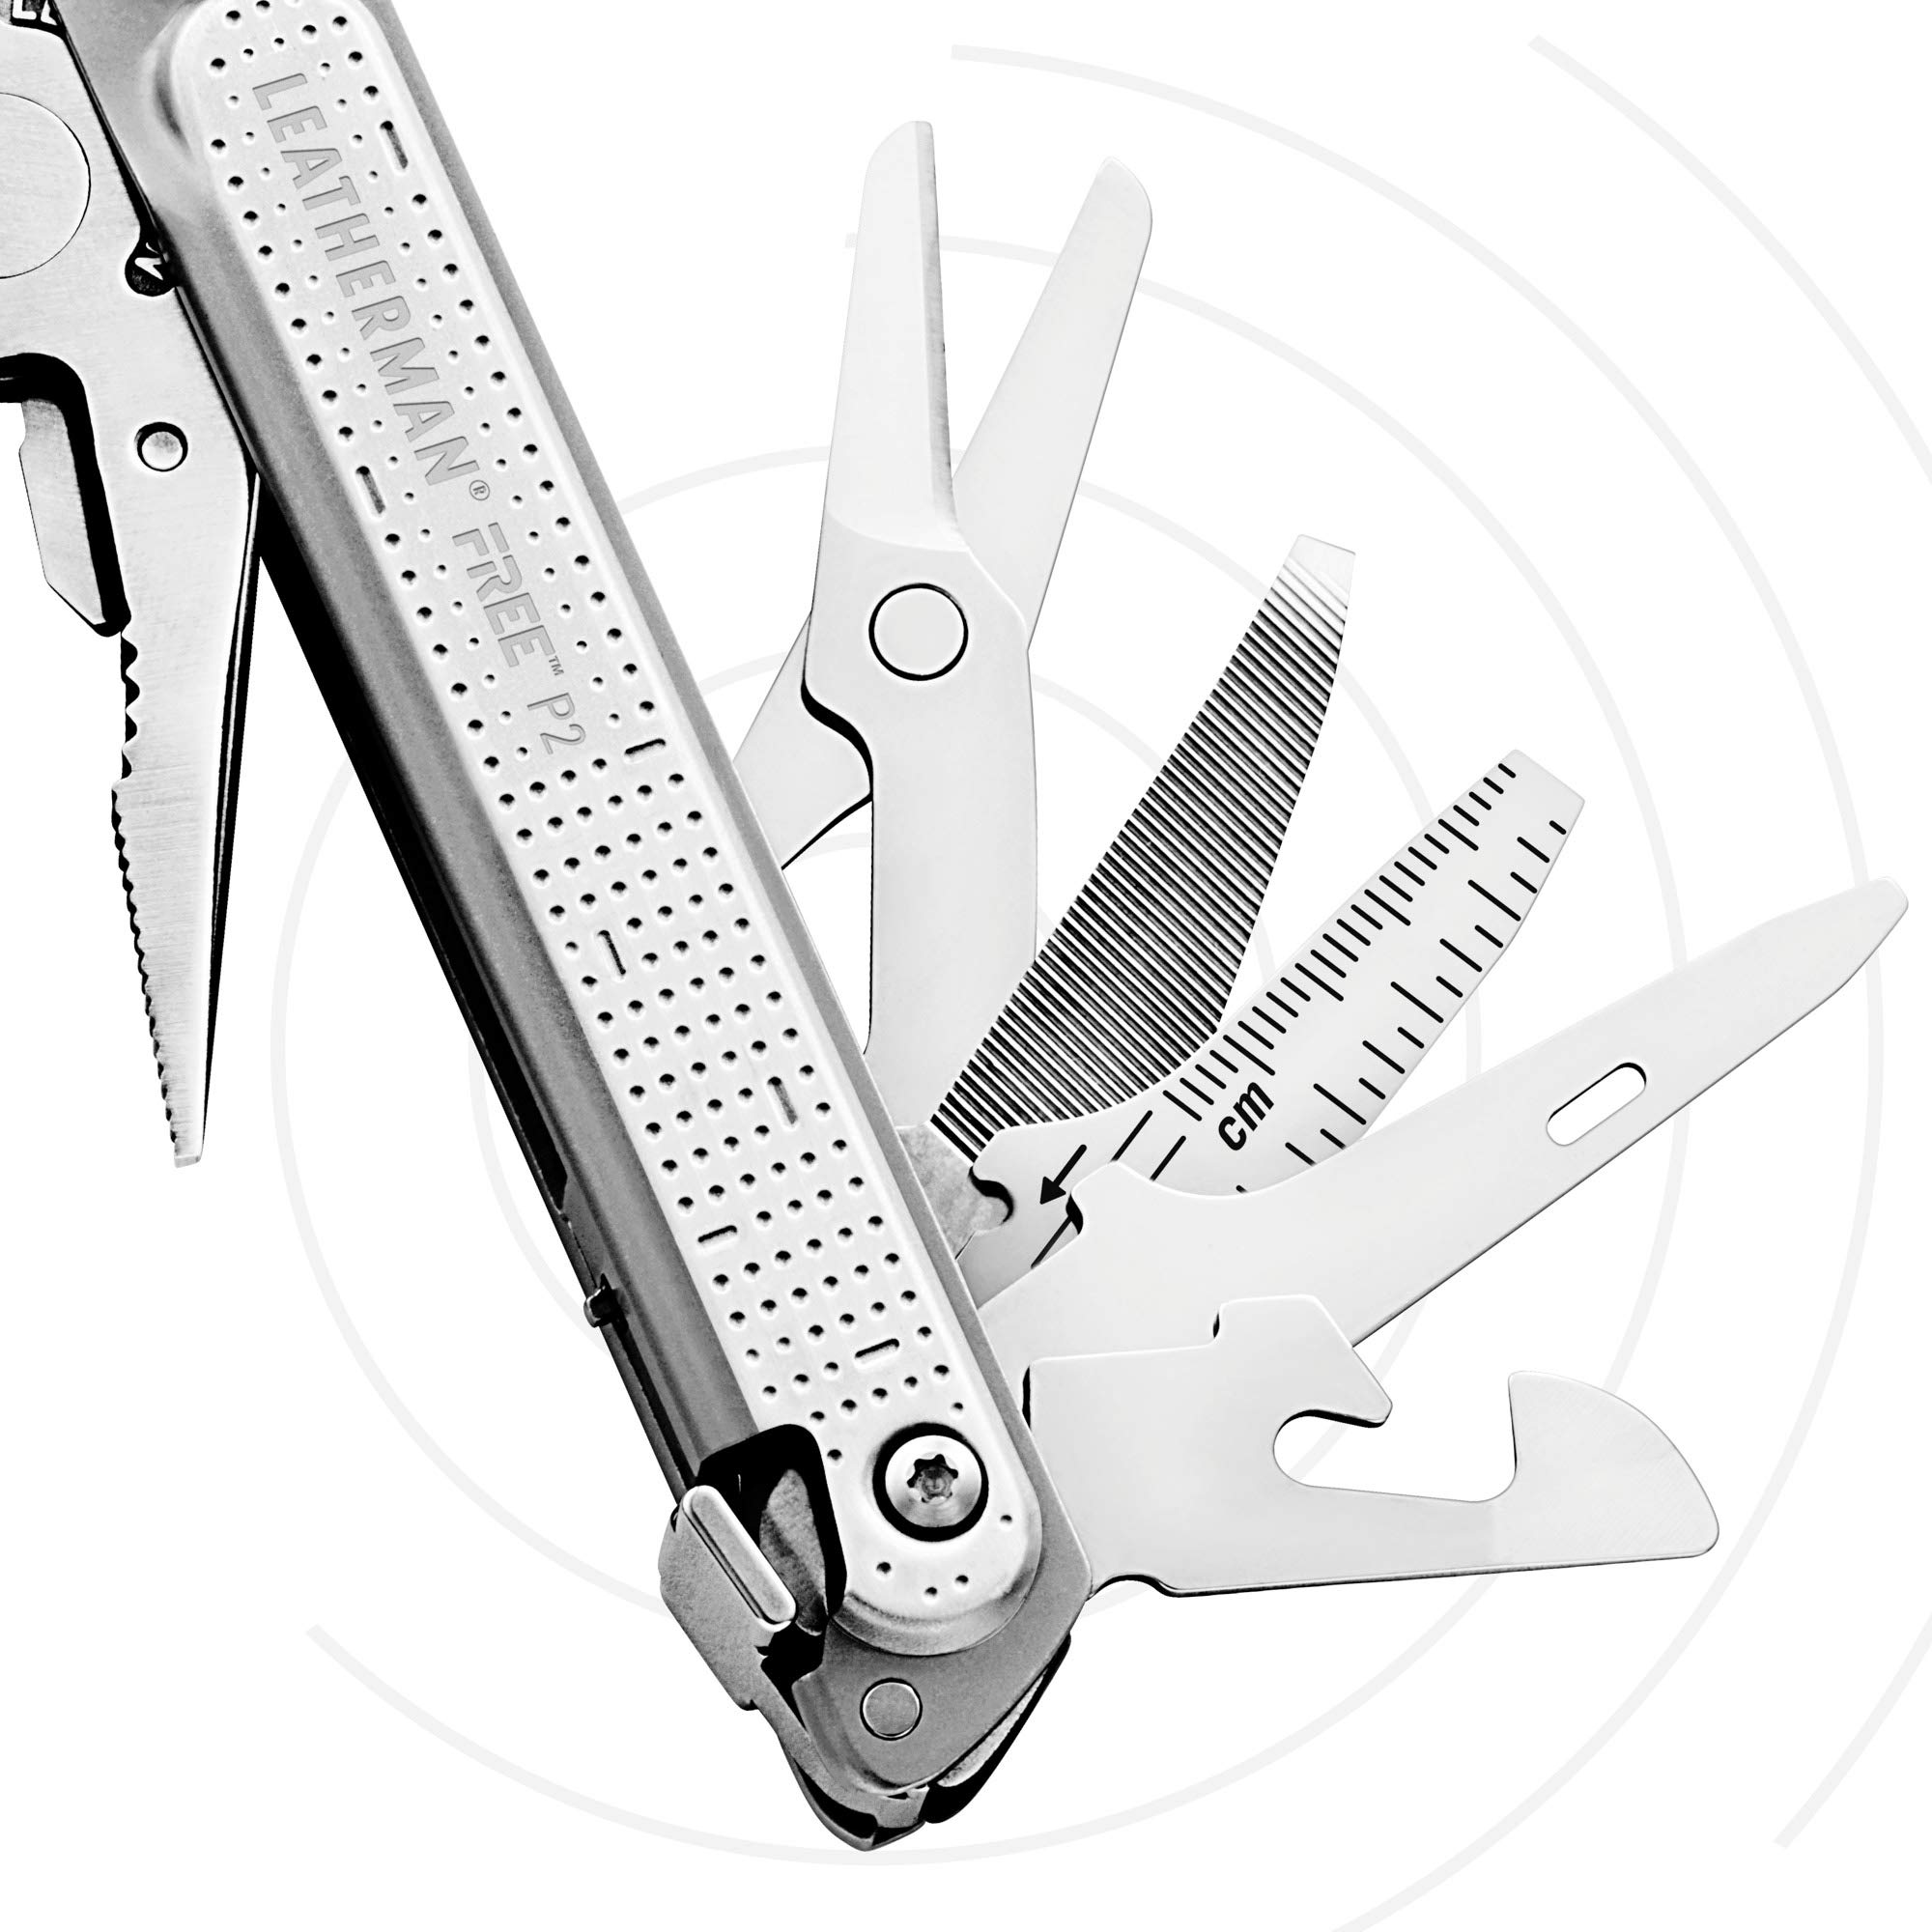 LEATHERMAN - FREE P2 Multitool with Magnetic Locking, One Hand Accessible Tools and Premium Nylon Sheath by LEATHERMAN (Image #5)